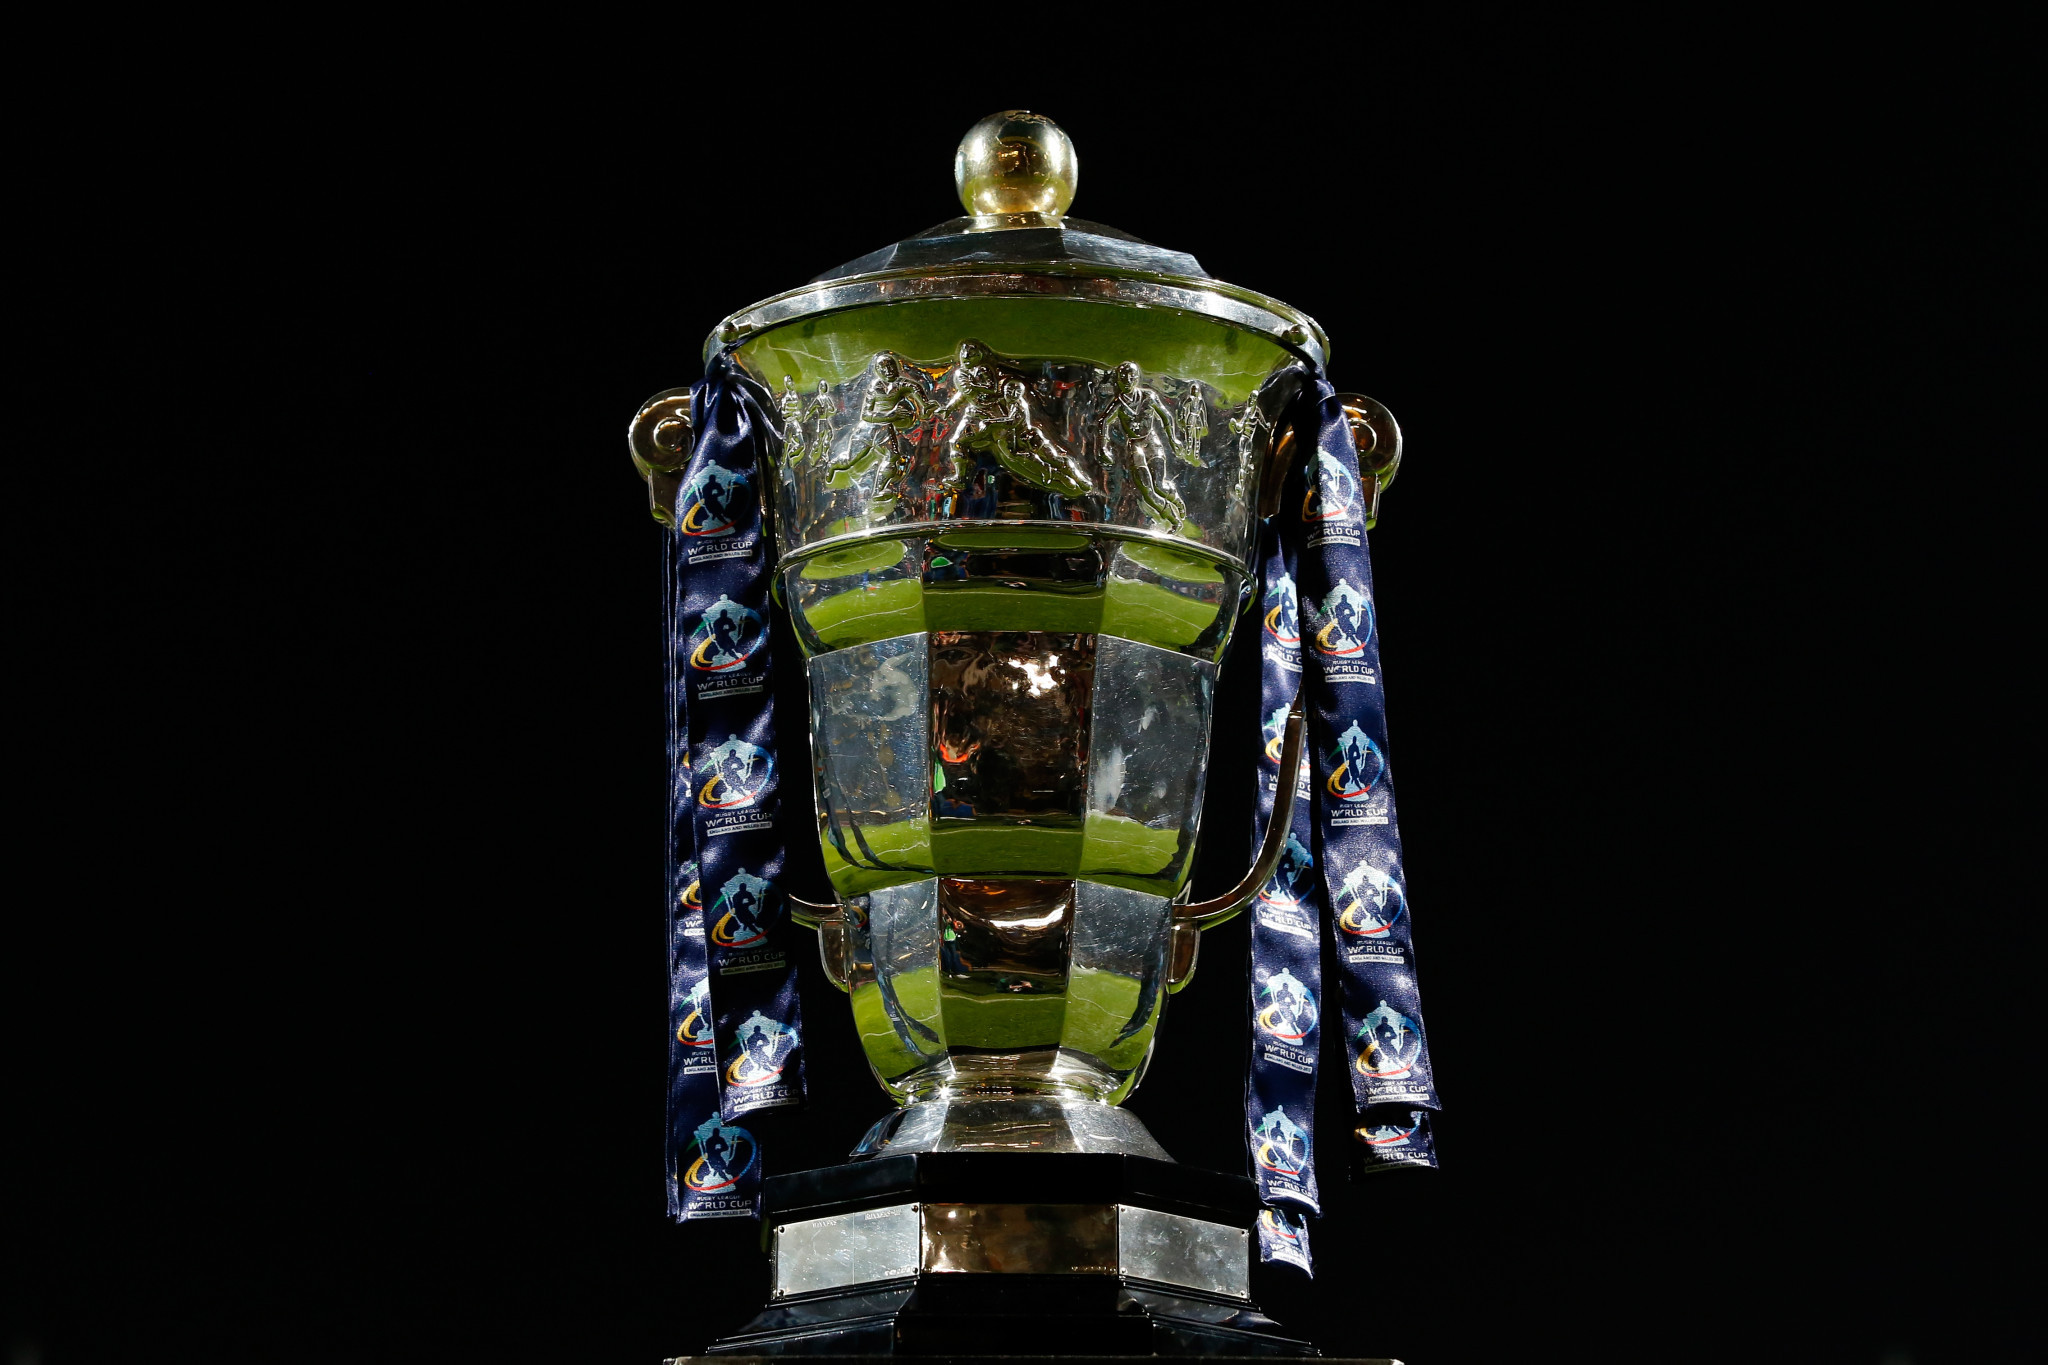 Rugby League World Cup organisers promise further dialogue reiterate desire to hold event in 2021